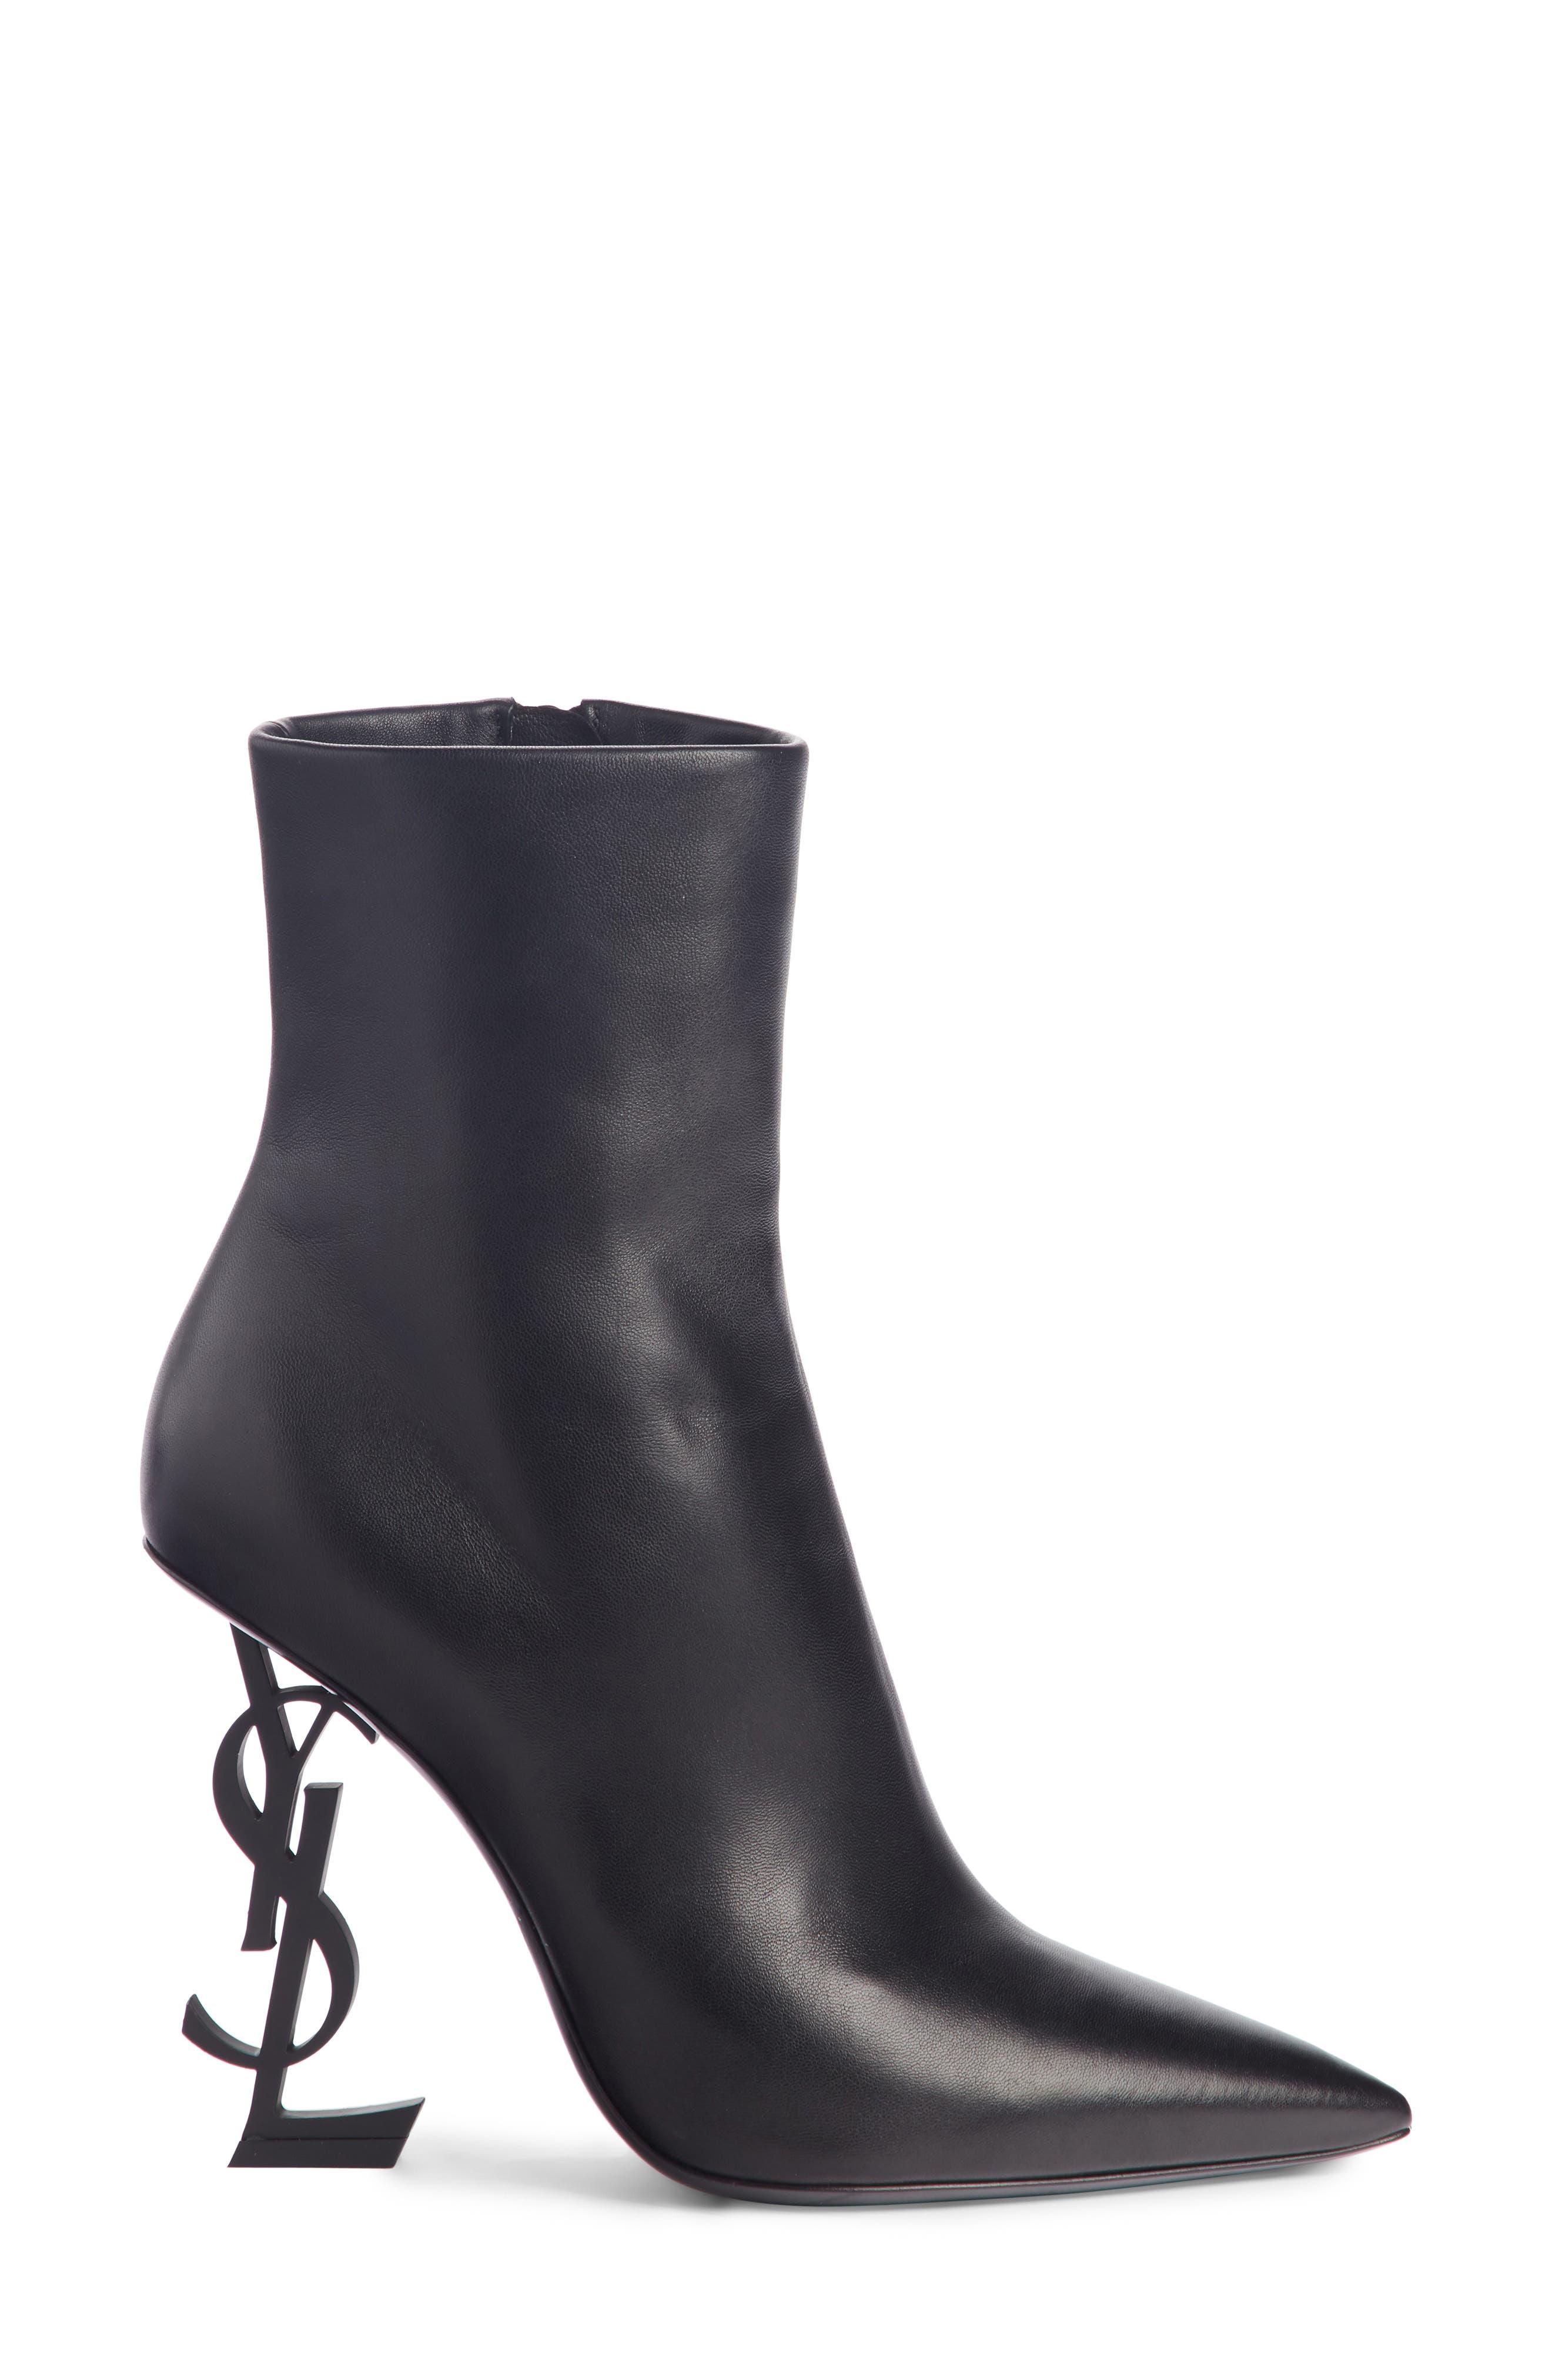 Opyum YSL Bootie,                             Alternate thumbnail 3, color,                             BLACK LEATHER